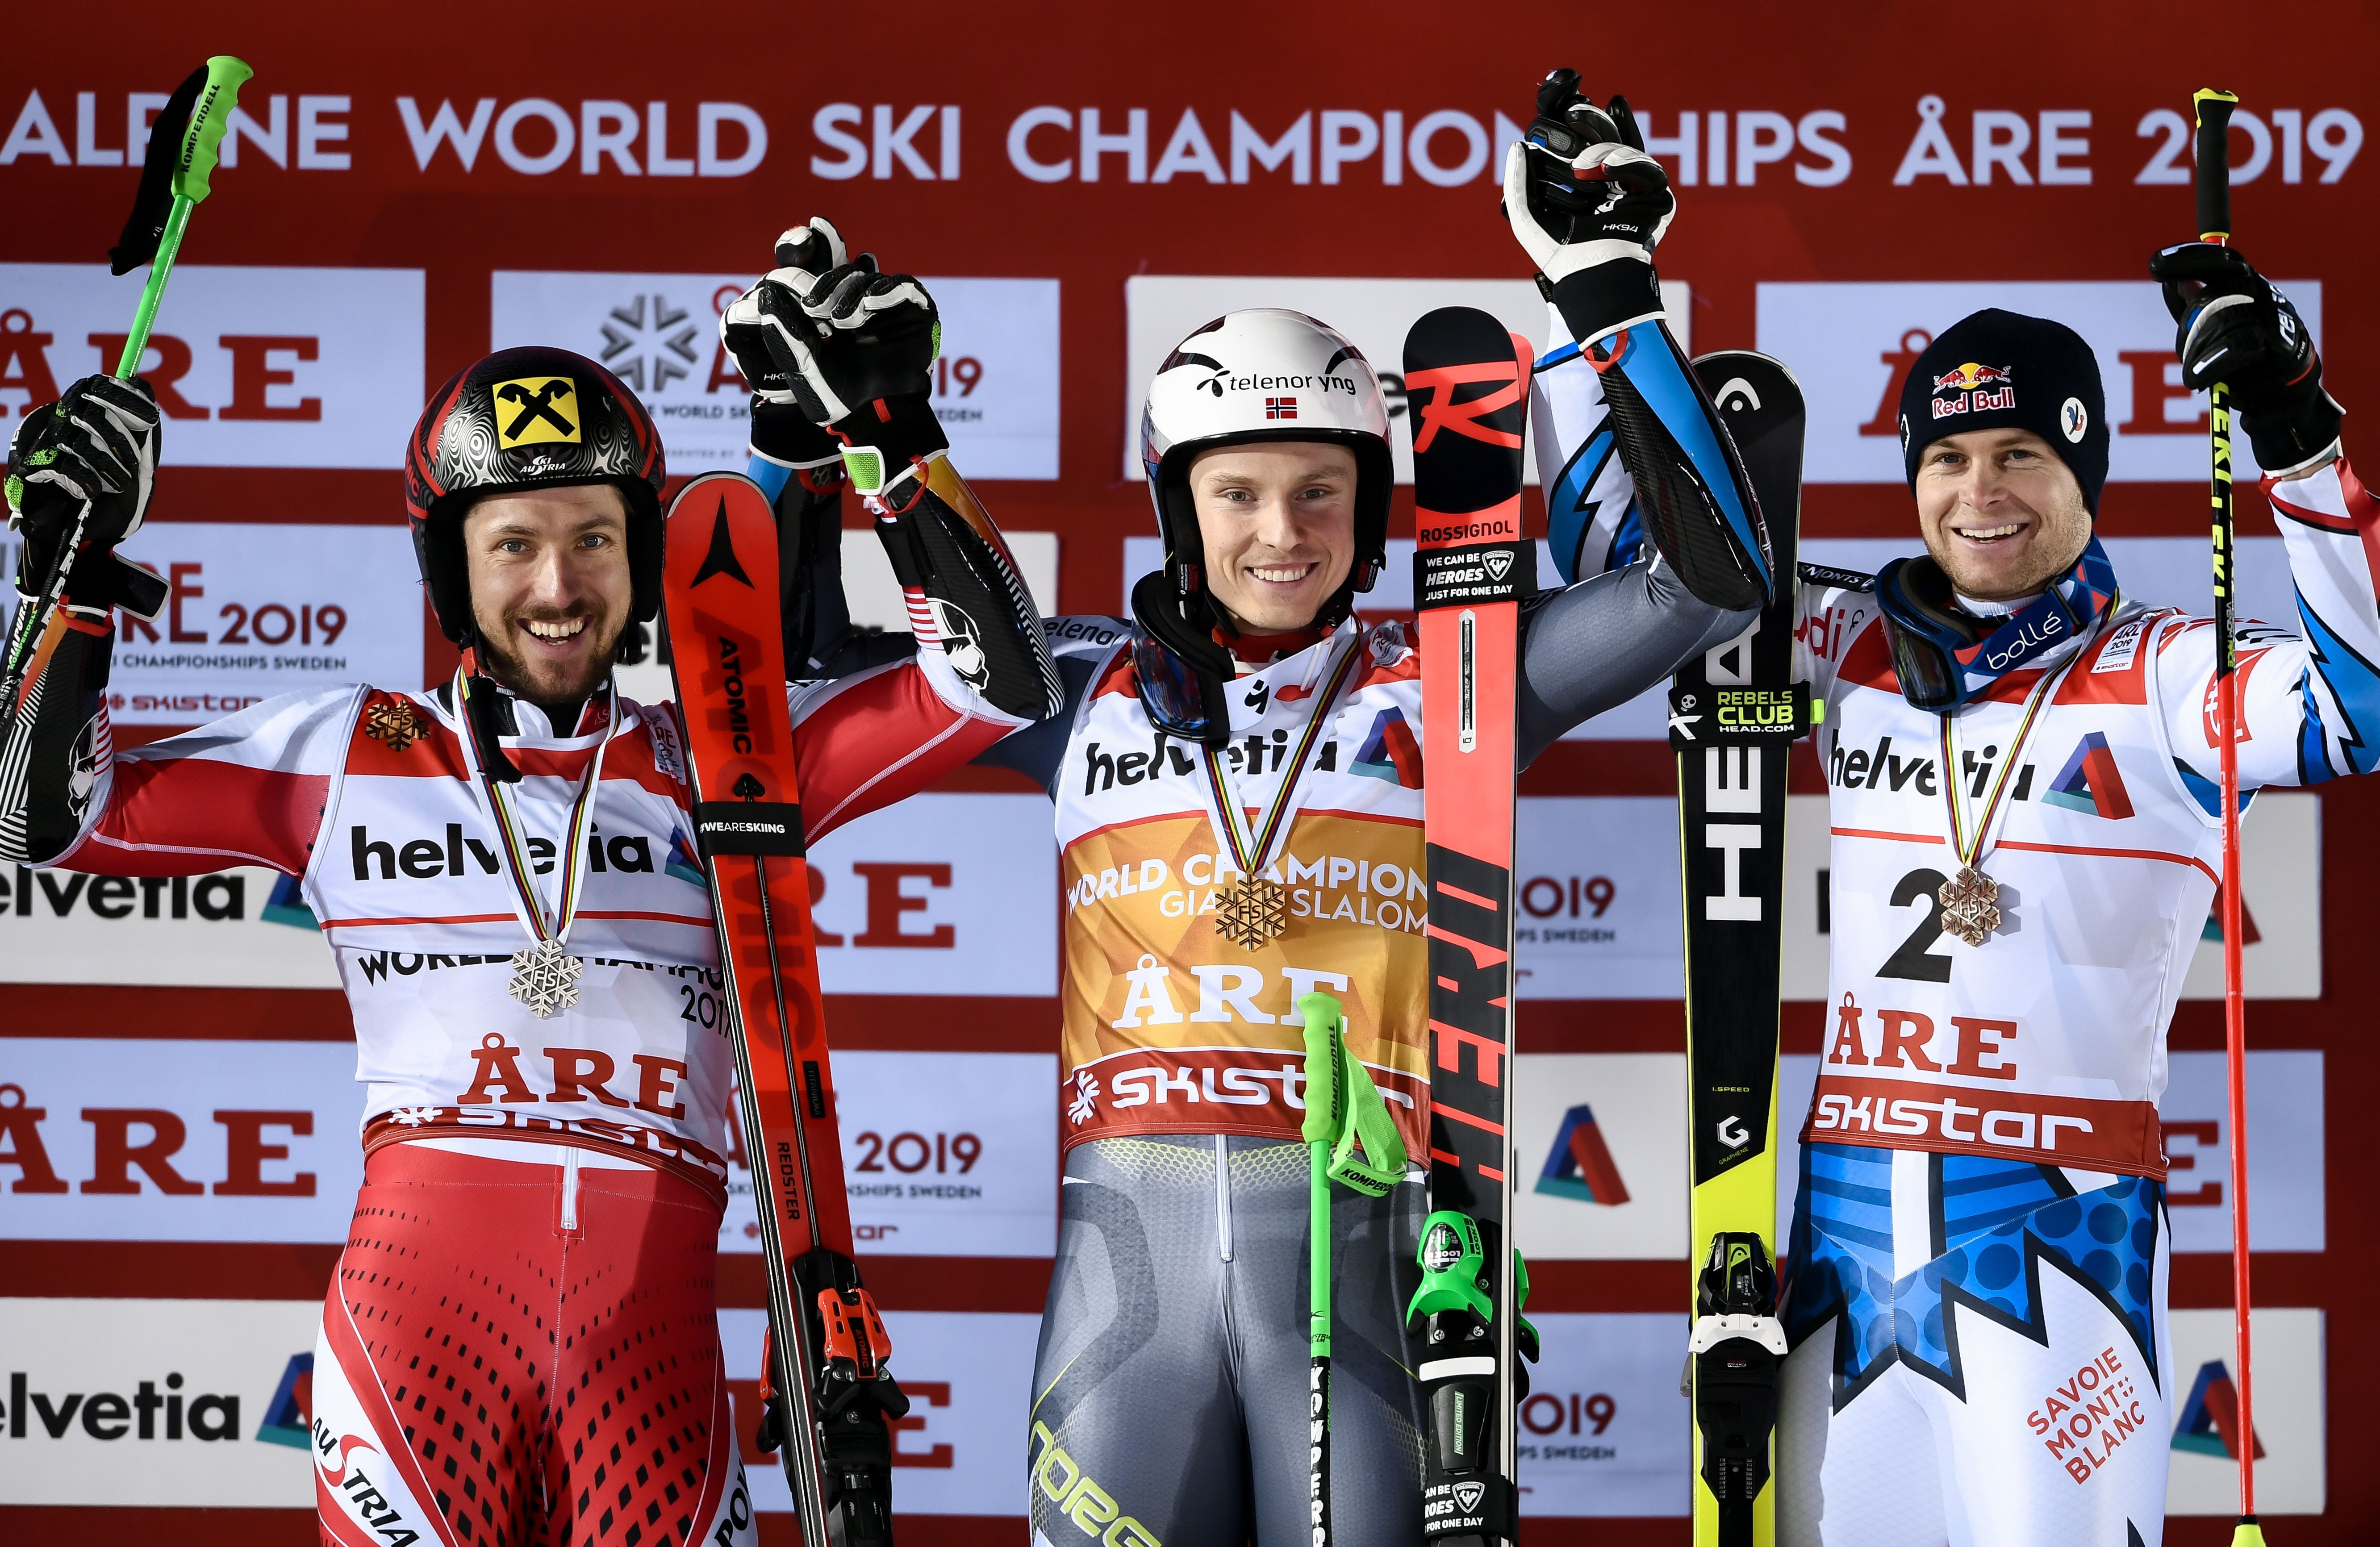 Second placed Austria's Marcel Hirscher, winner Norway's Henrik Kristoffersen, and third placed France's Alexis Pinturault celebrate after the second run of the men's Giant slalom event at the 2019 FIS Alpine Ski World Championships at the National Arena